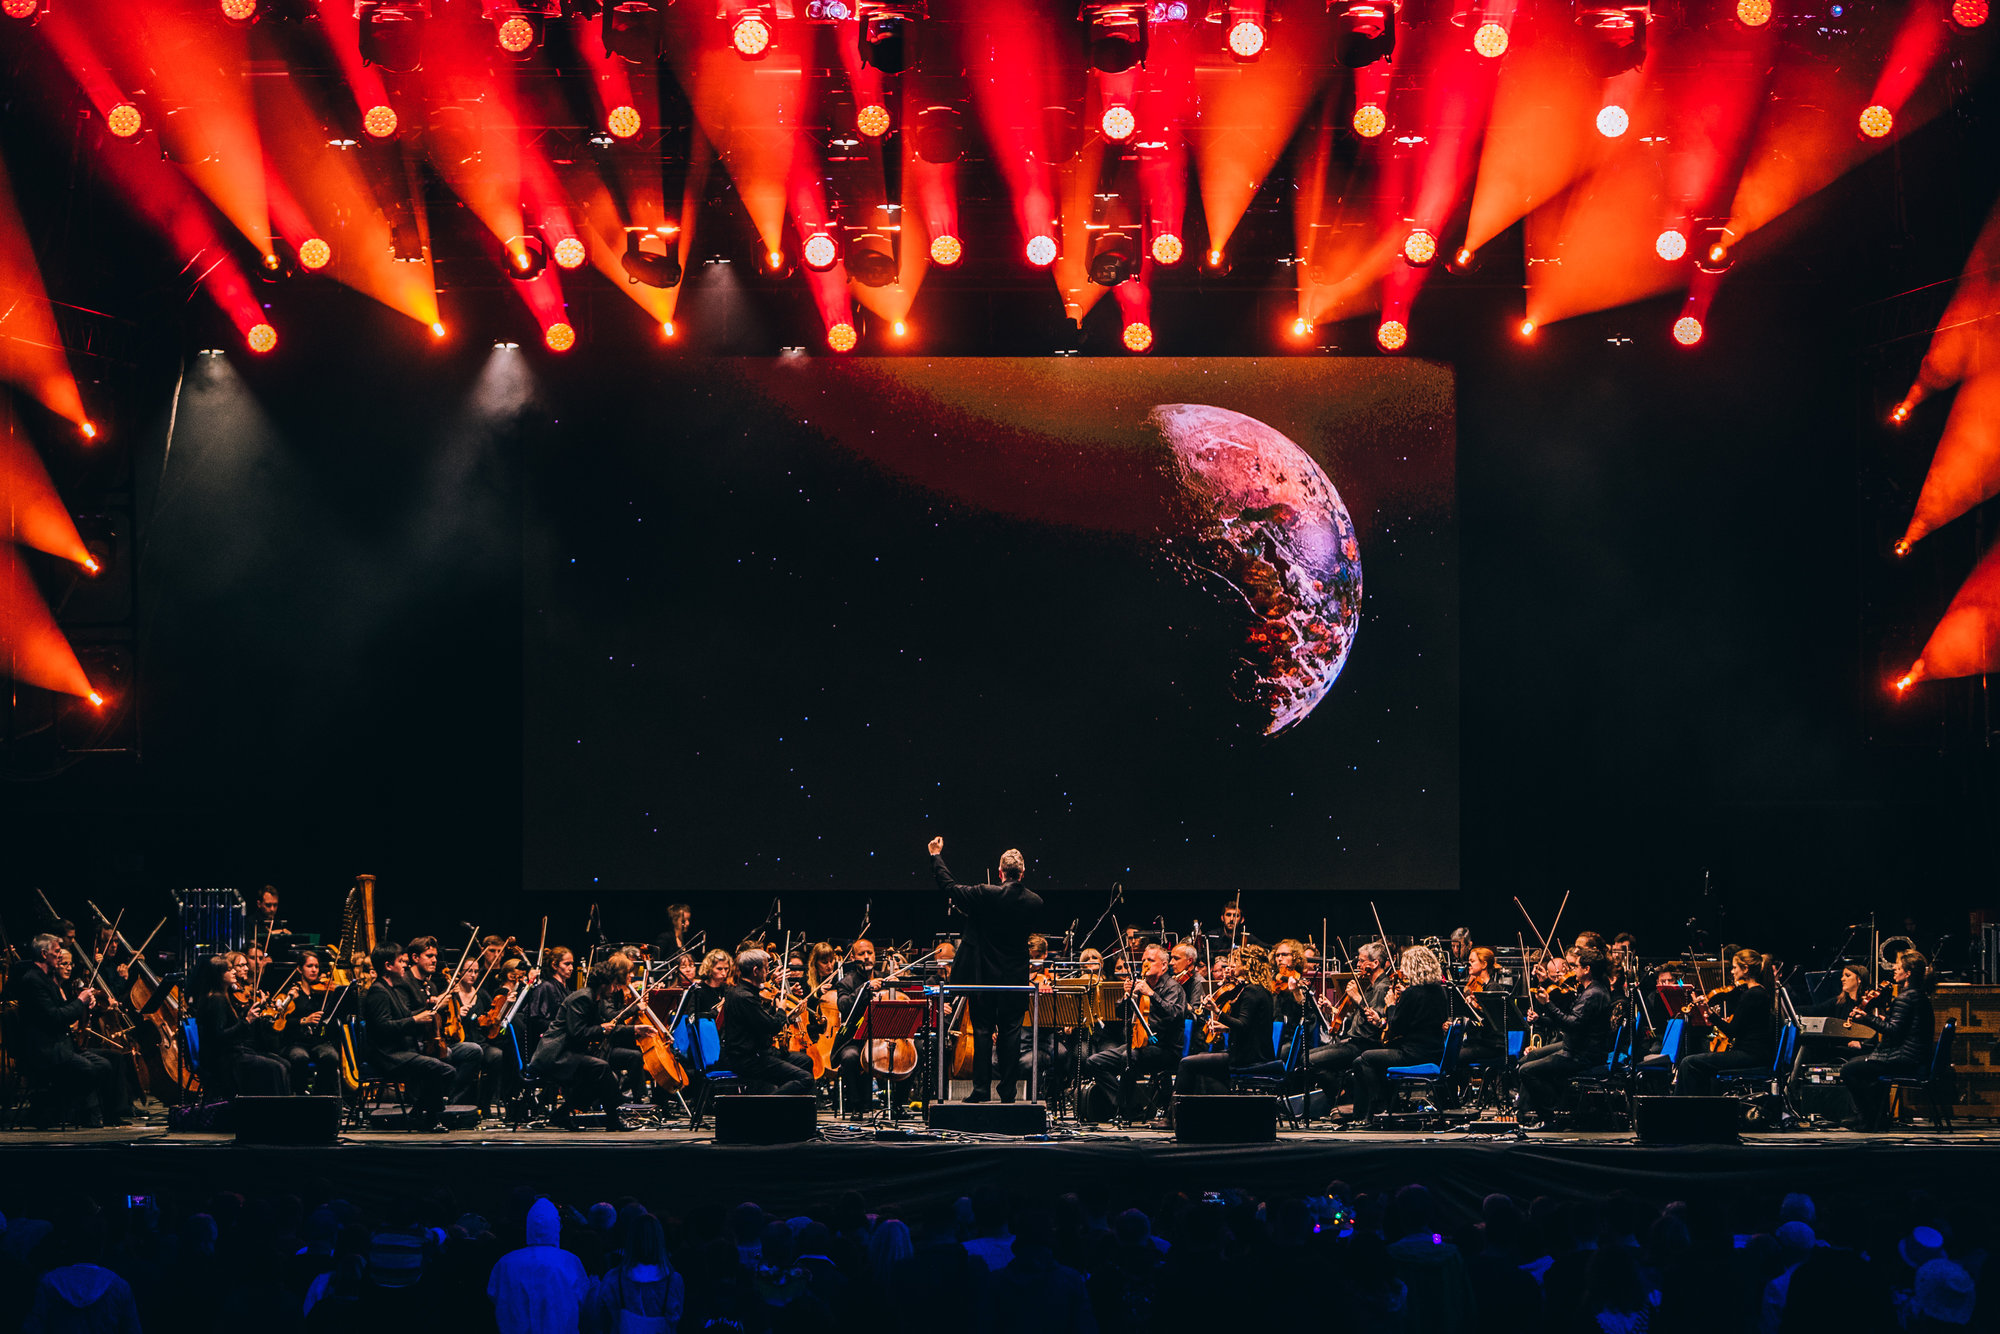 The Halle orchestra at Bluedot festival